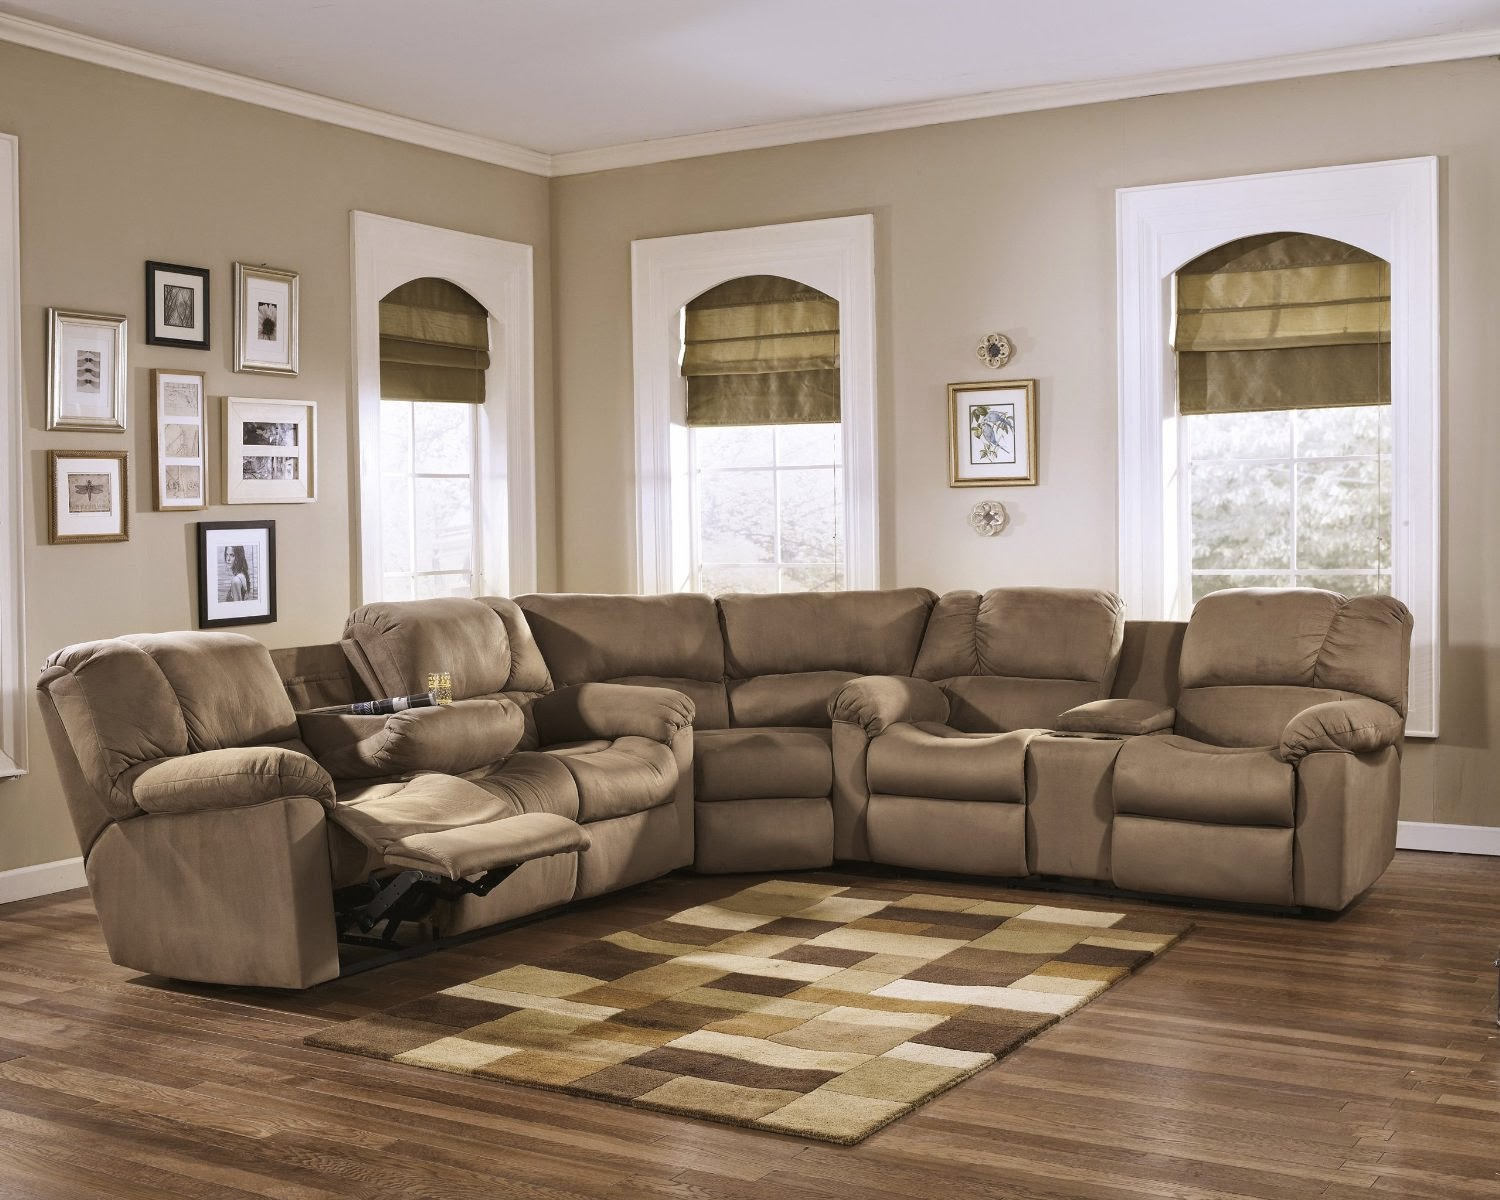 Best Leather Reclining Sofa Brands Reviews Fabric Recliner Sofa Sets